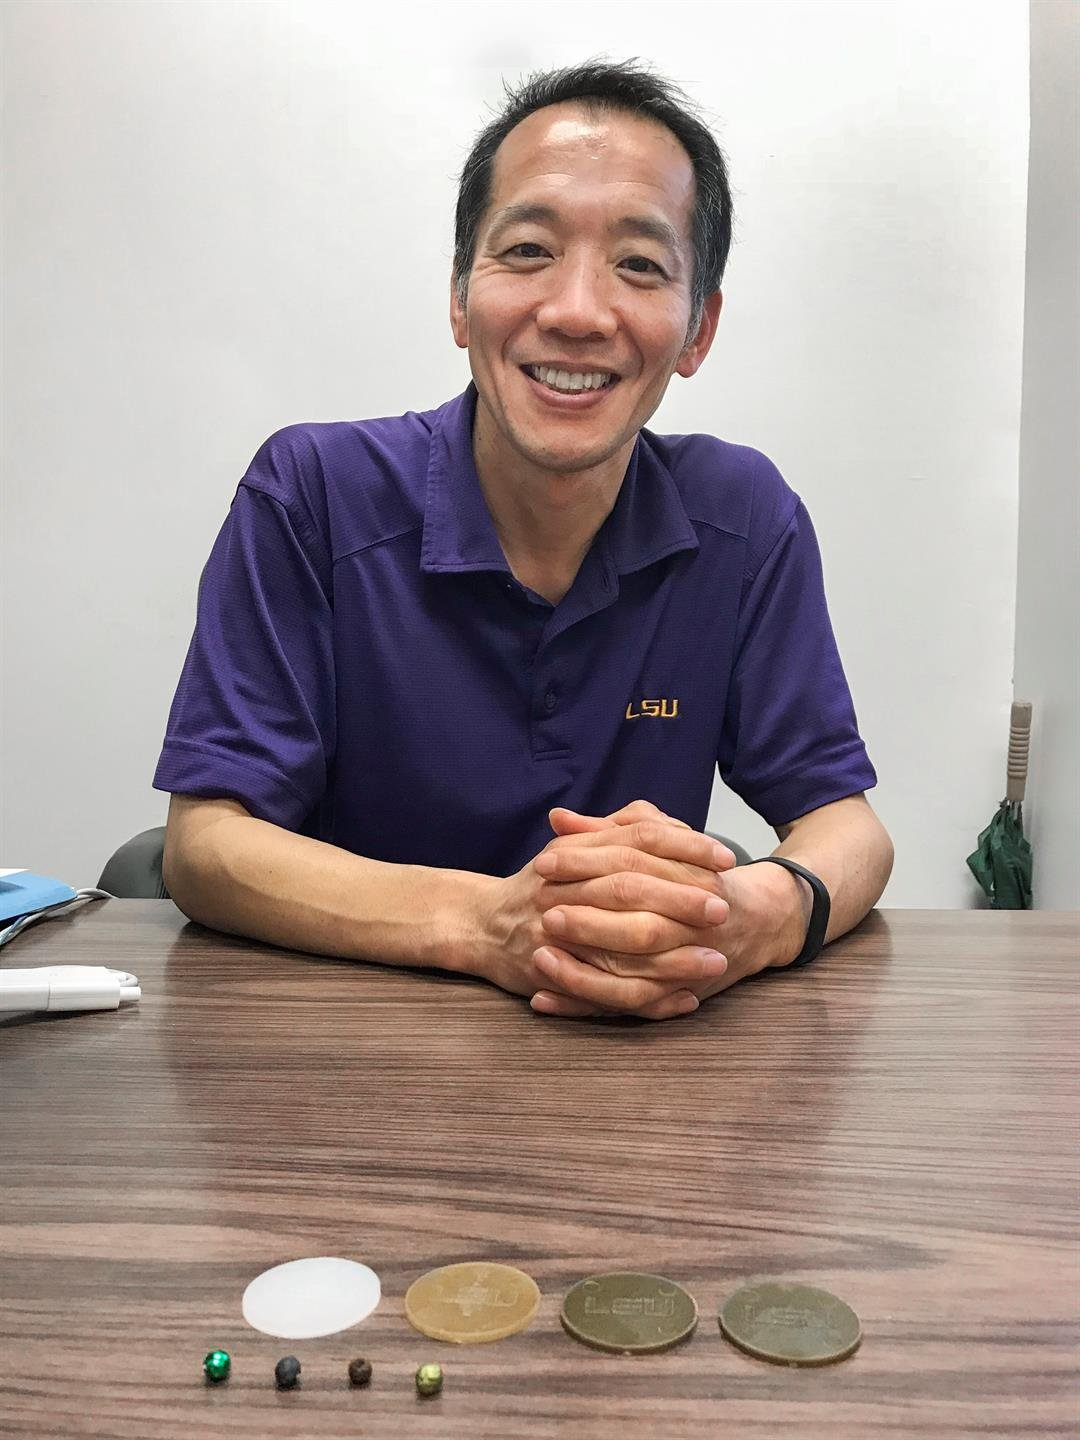 Dr. Naohiro Kato, with his biodegradable beads and doubloons. Source: LSU